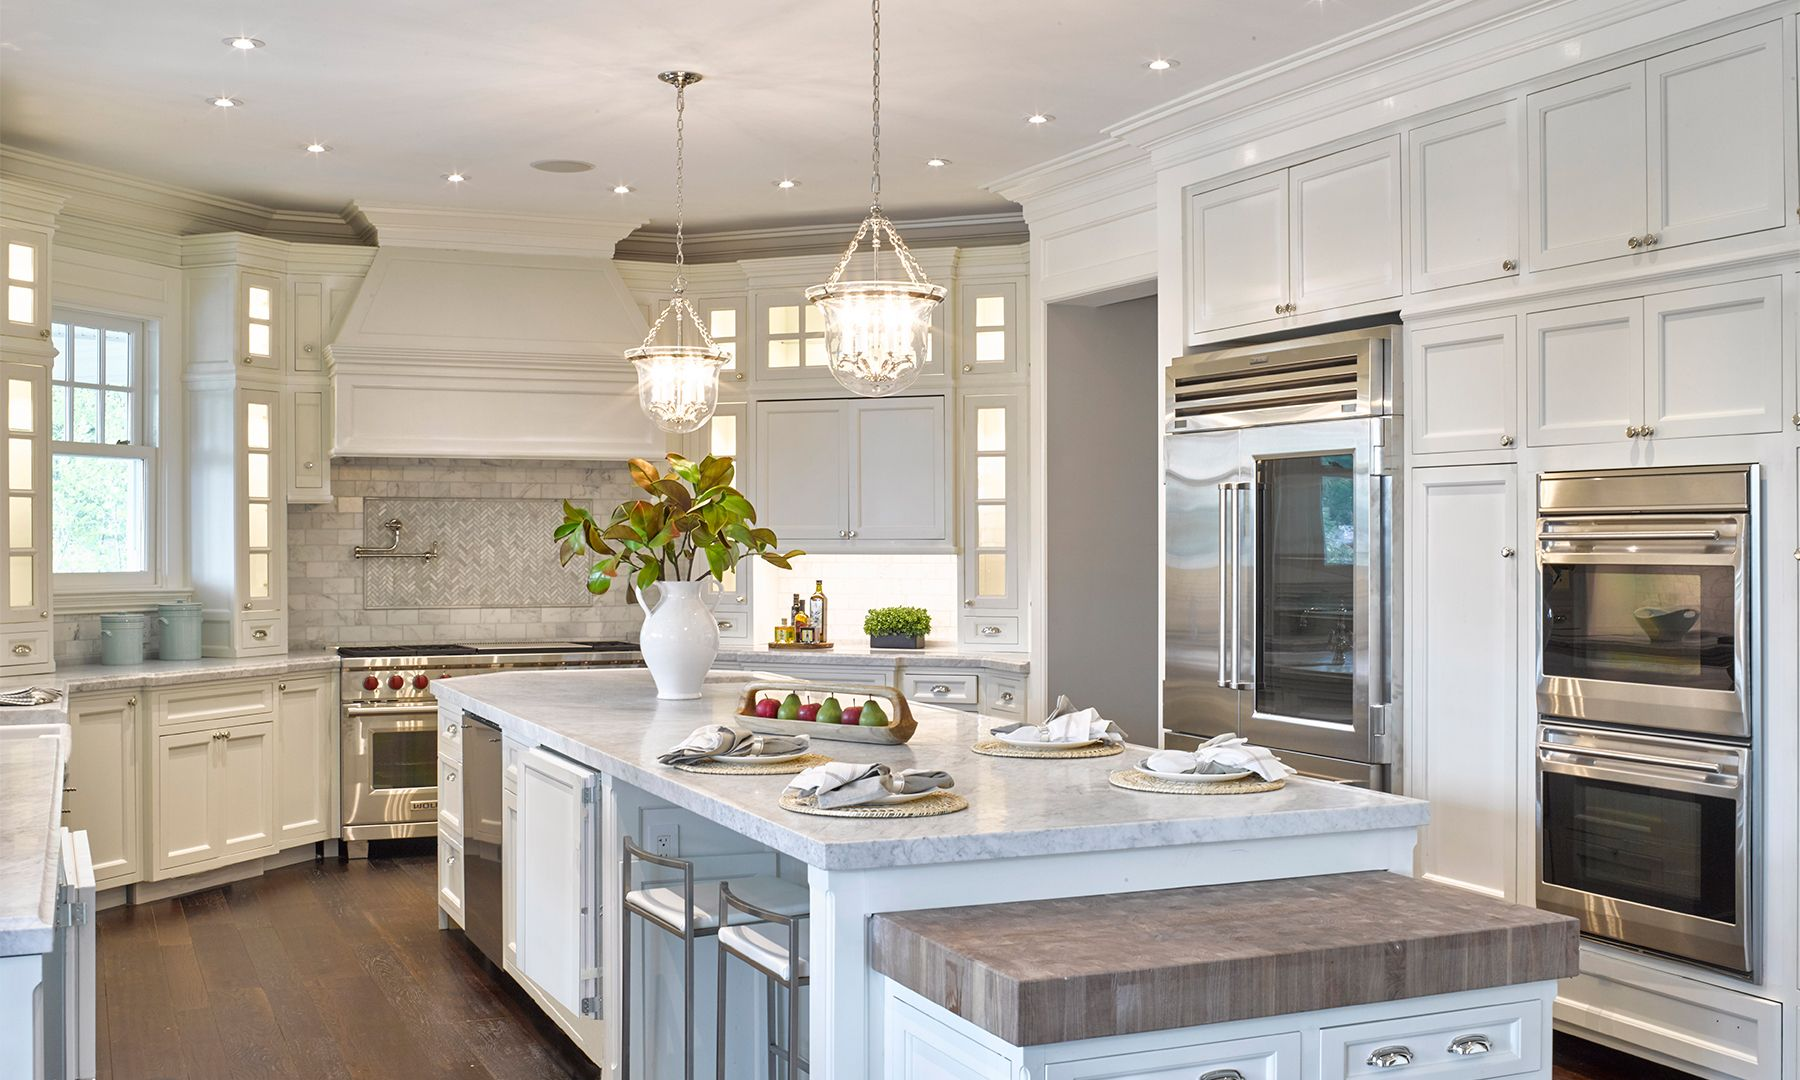 Greystone On Hudson Home Photos Dujour Luxury Kitchens Mansions Luxury Kitchens Mansion Kitchen